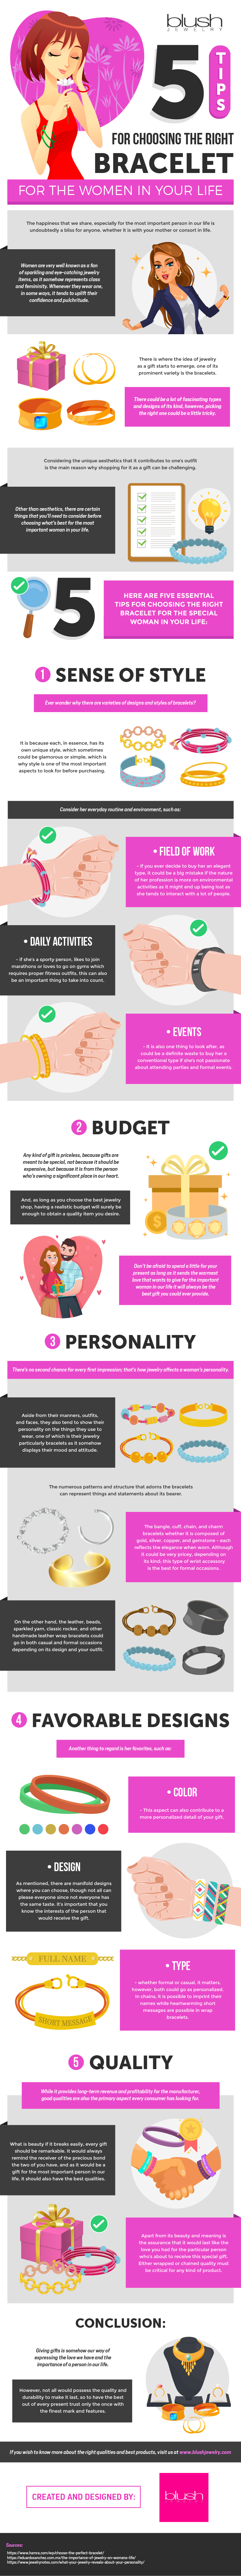 5 Tips for Choosing the Right Bracelet for the Women in Your Life #infographic